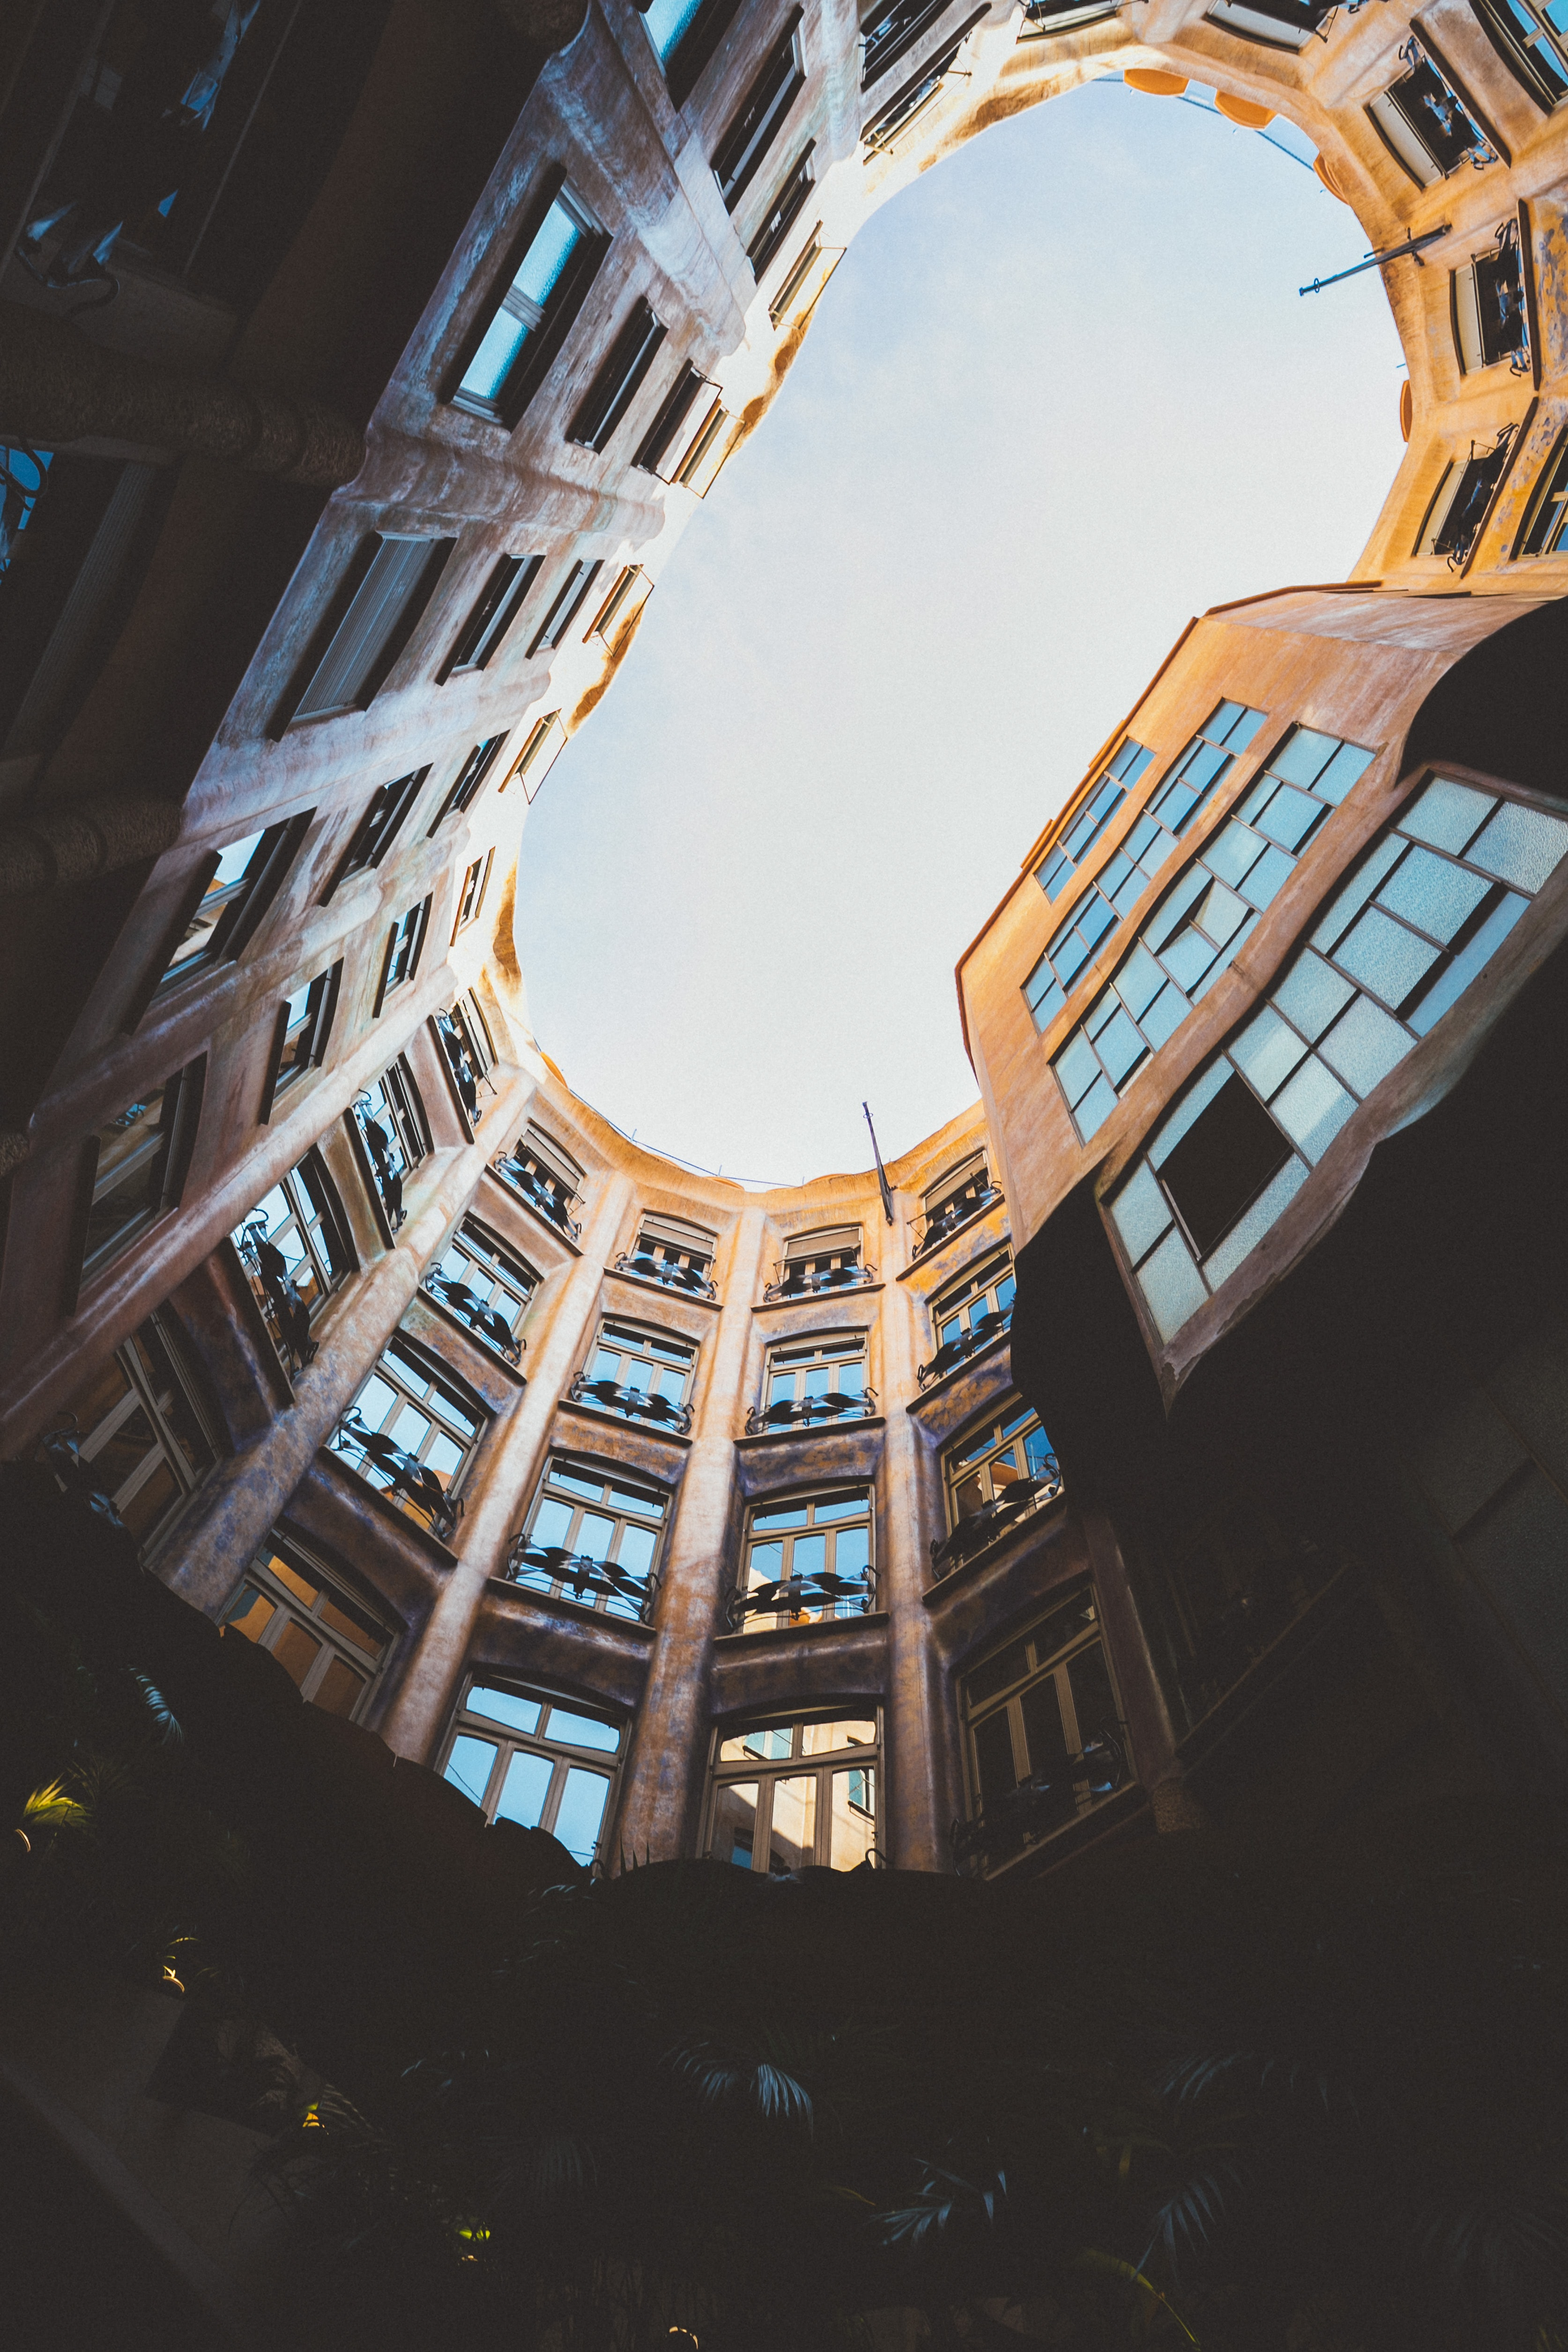 worm's eyeview photo of oval high-rise building ceiling